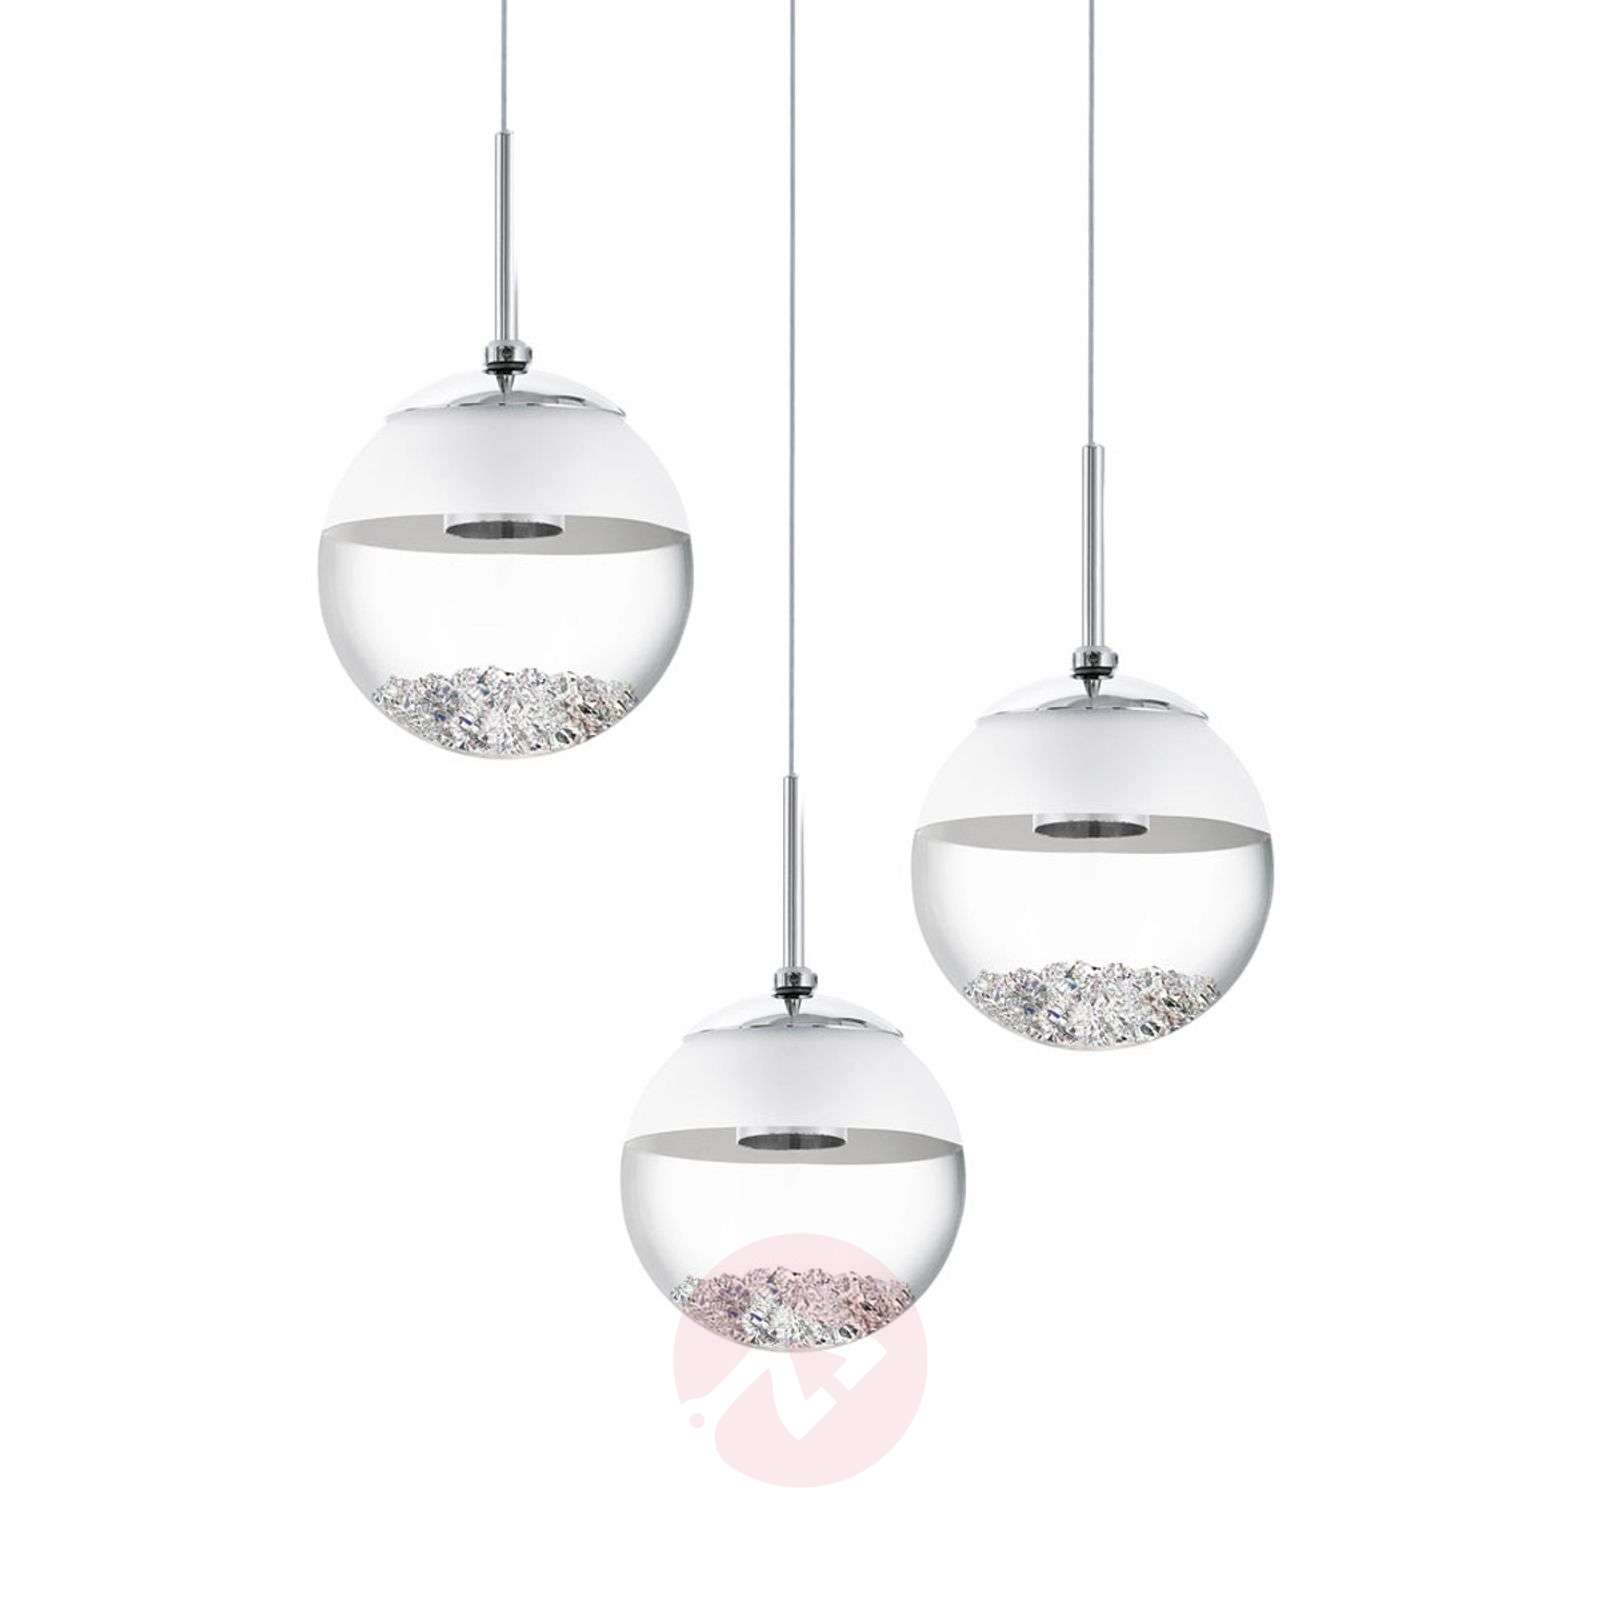 Suspension LED Montefio cristal 3 flammes-3031616-01